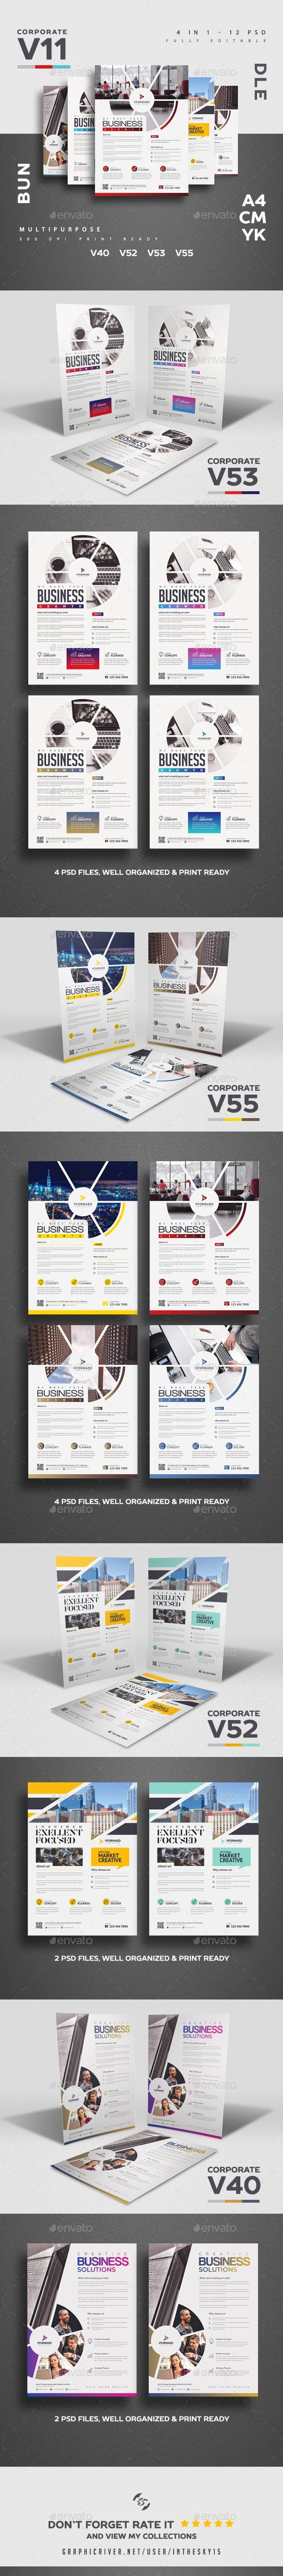 Corporate V11 Flyer Bundle Flyer Template Business Flyer Templates Flyer